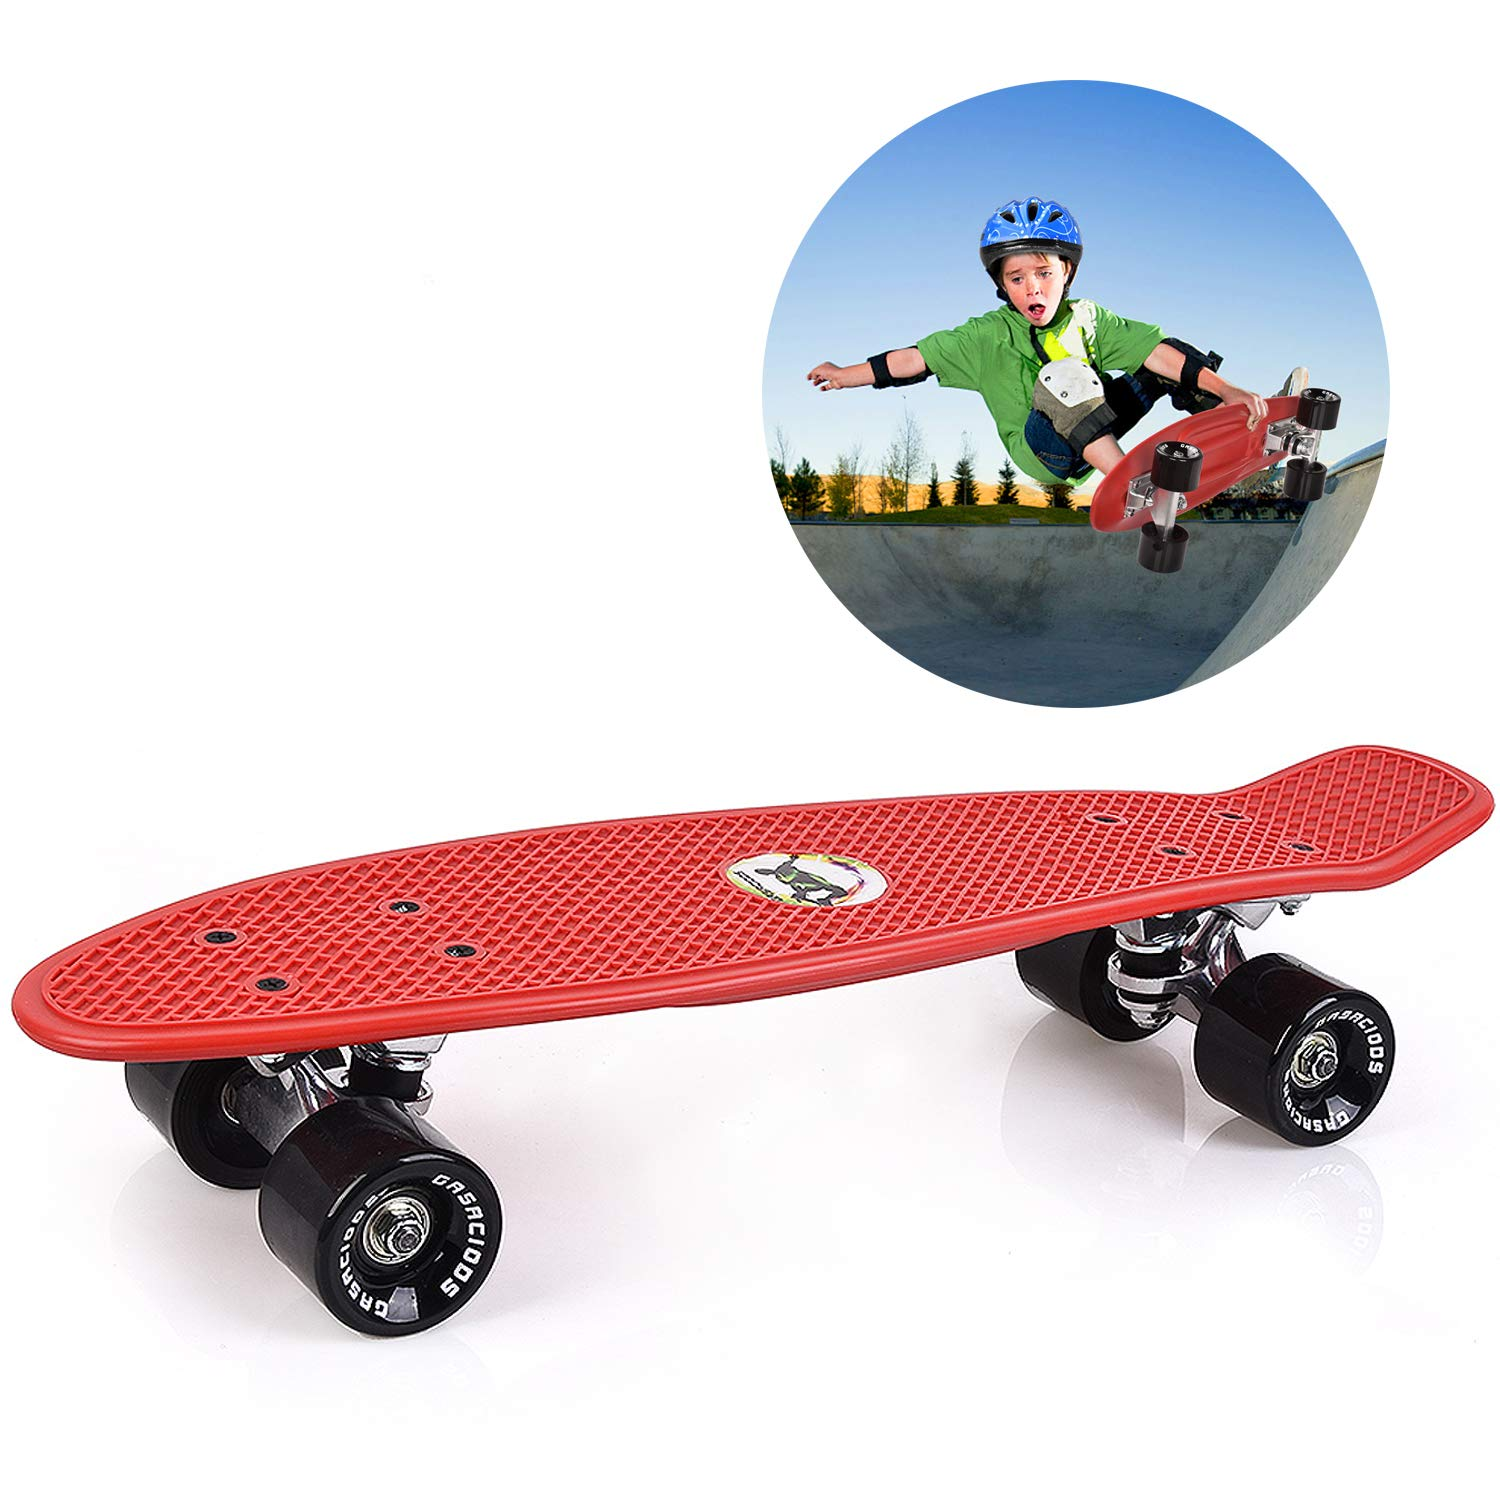 GASACIODS 22 Inch Mini Cruiser Skateboard Complete Plastic Retro Board with Bendable Deck and Smooth PU Casters Speed for Kids Youths Beginners, 220 Ibs